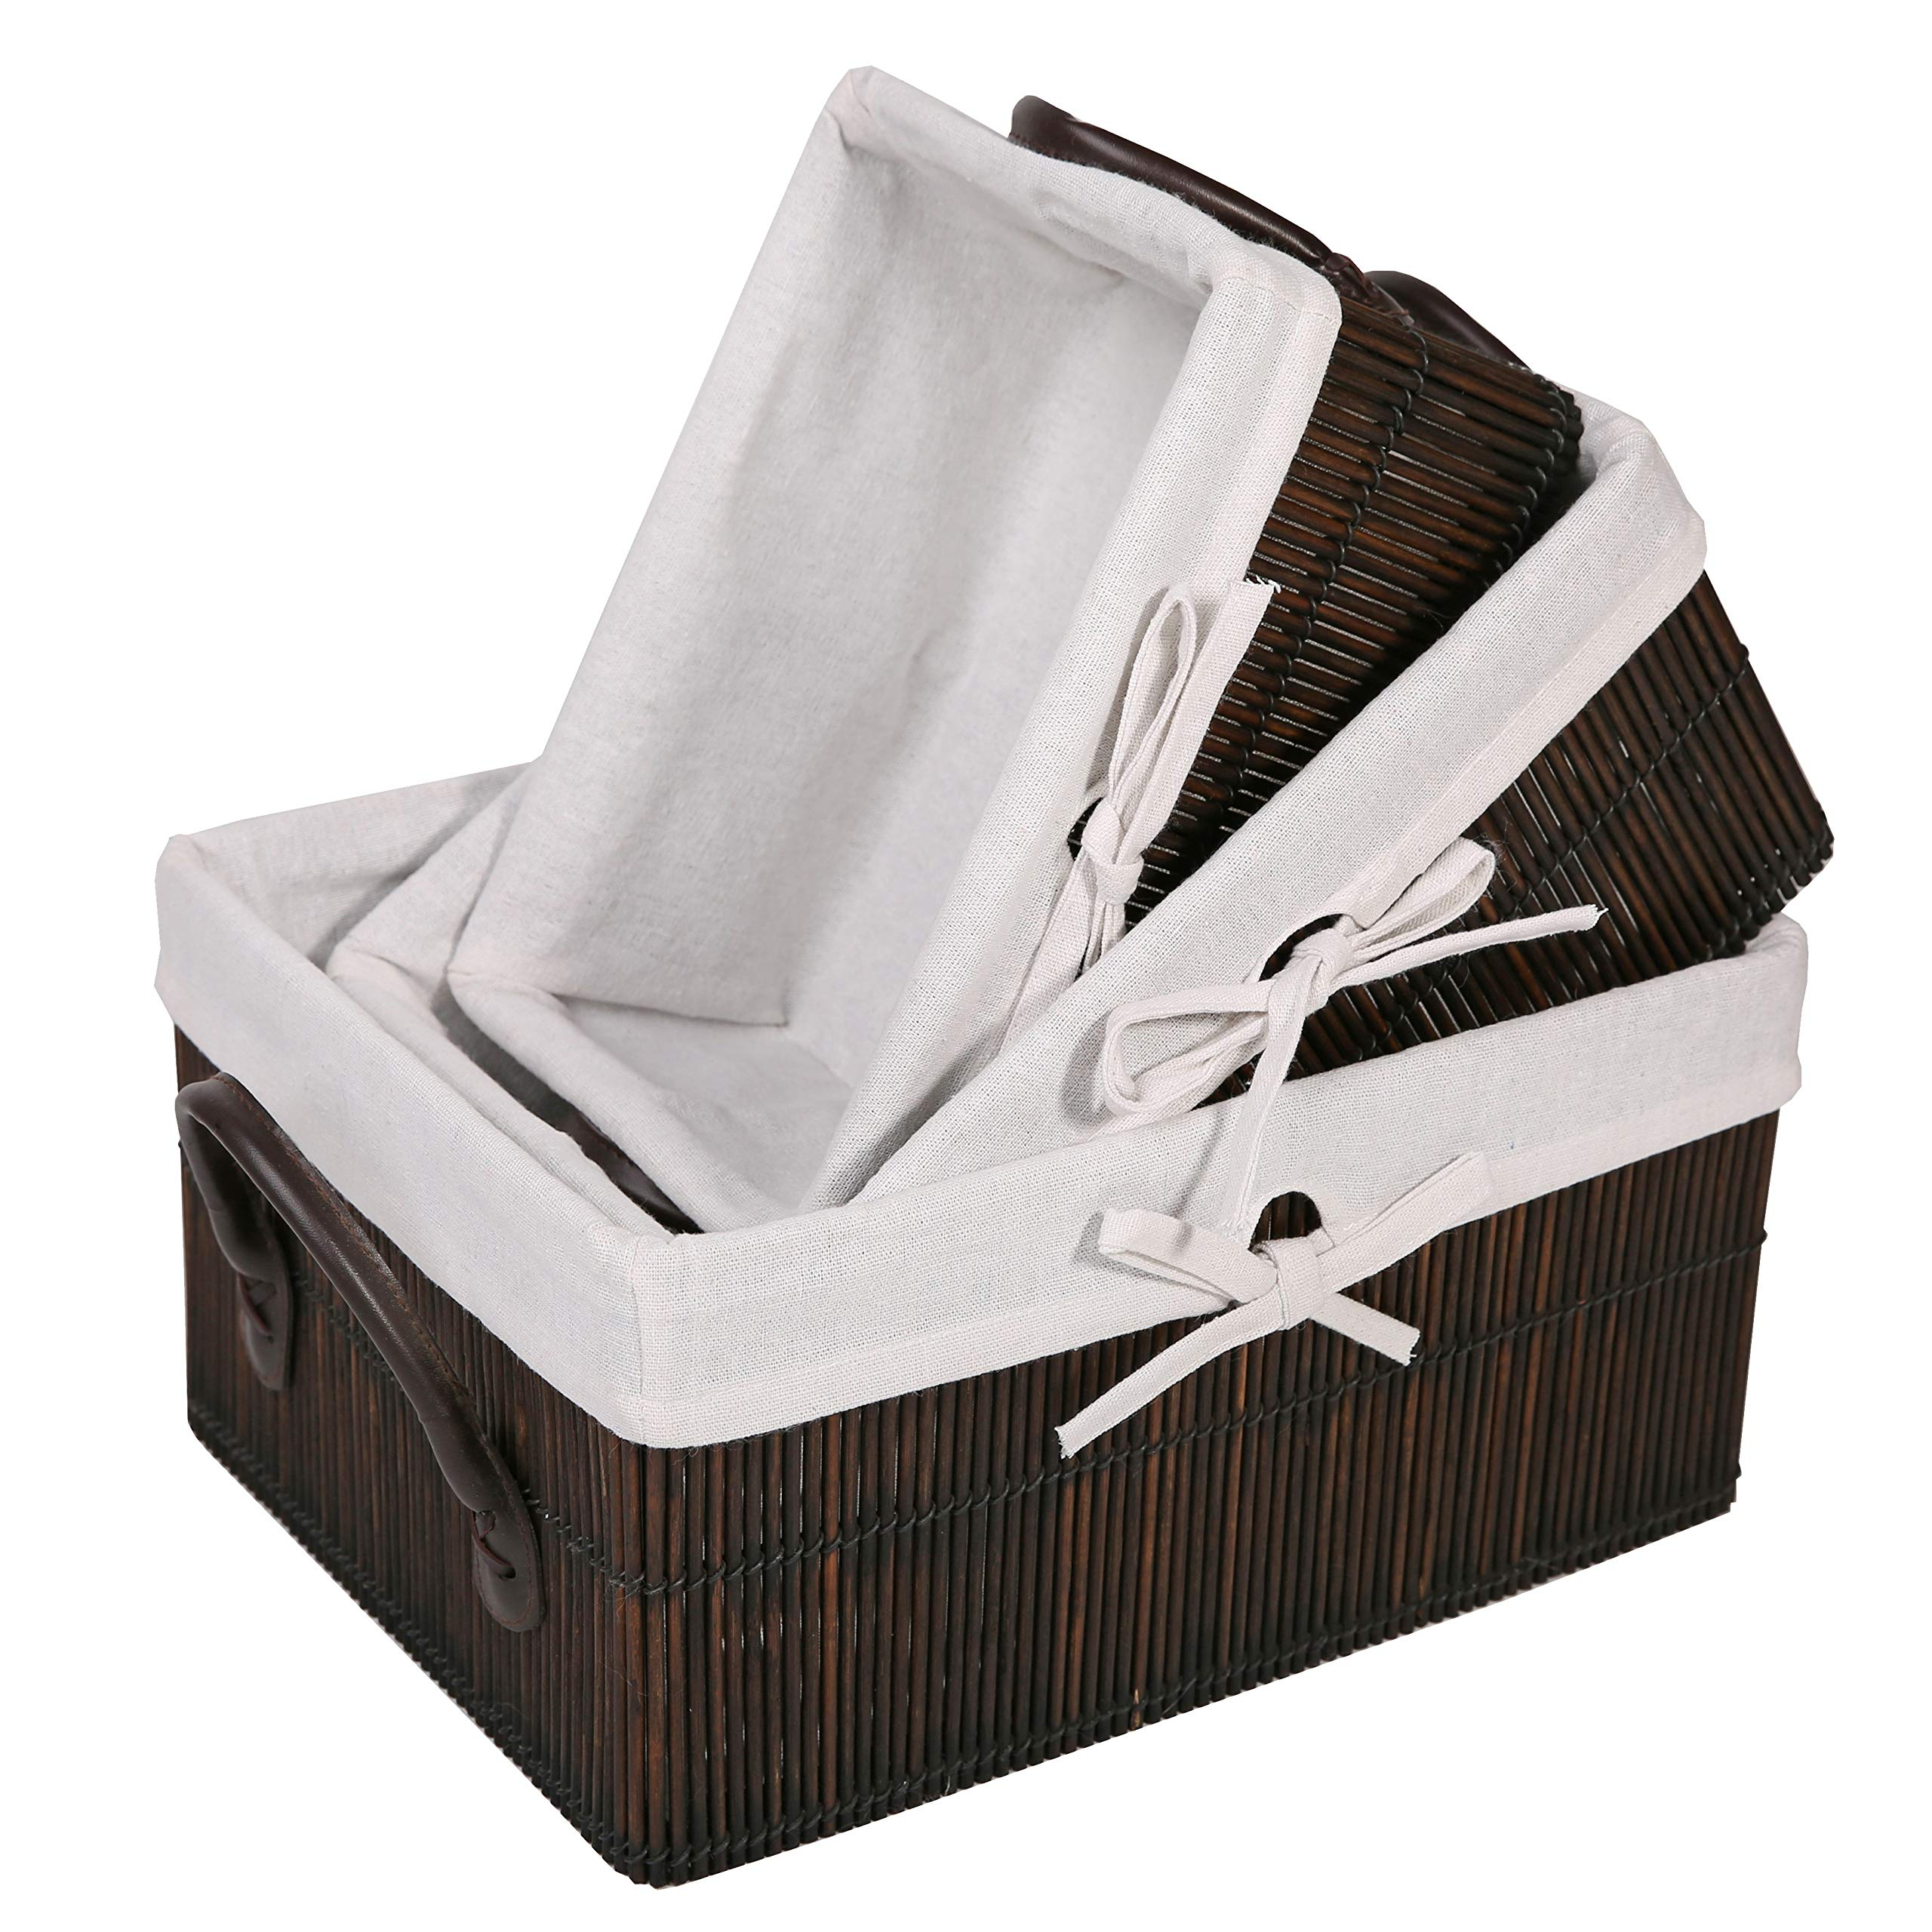 SLPR Bamboo Storage Baskets with Leather Handles and Lining (Set of 3)   Farmhouse Decorative Storage Boxes